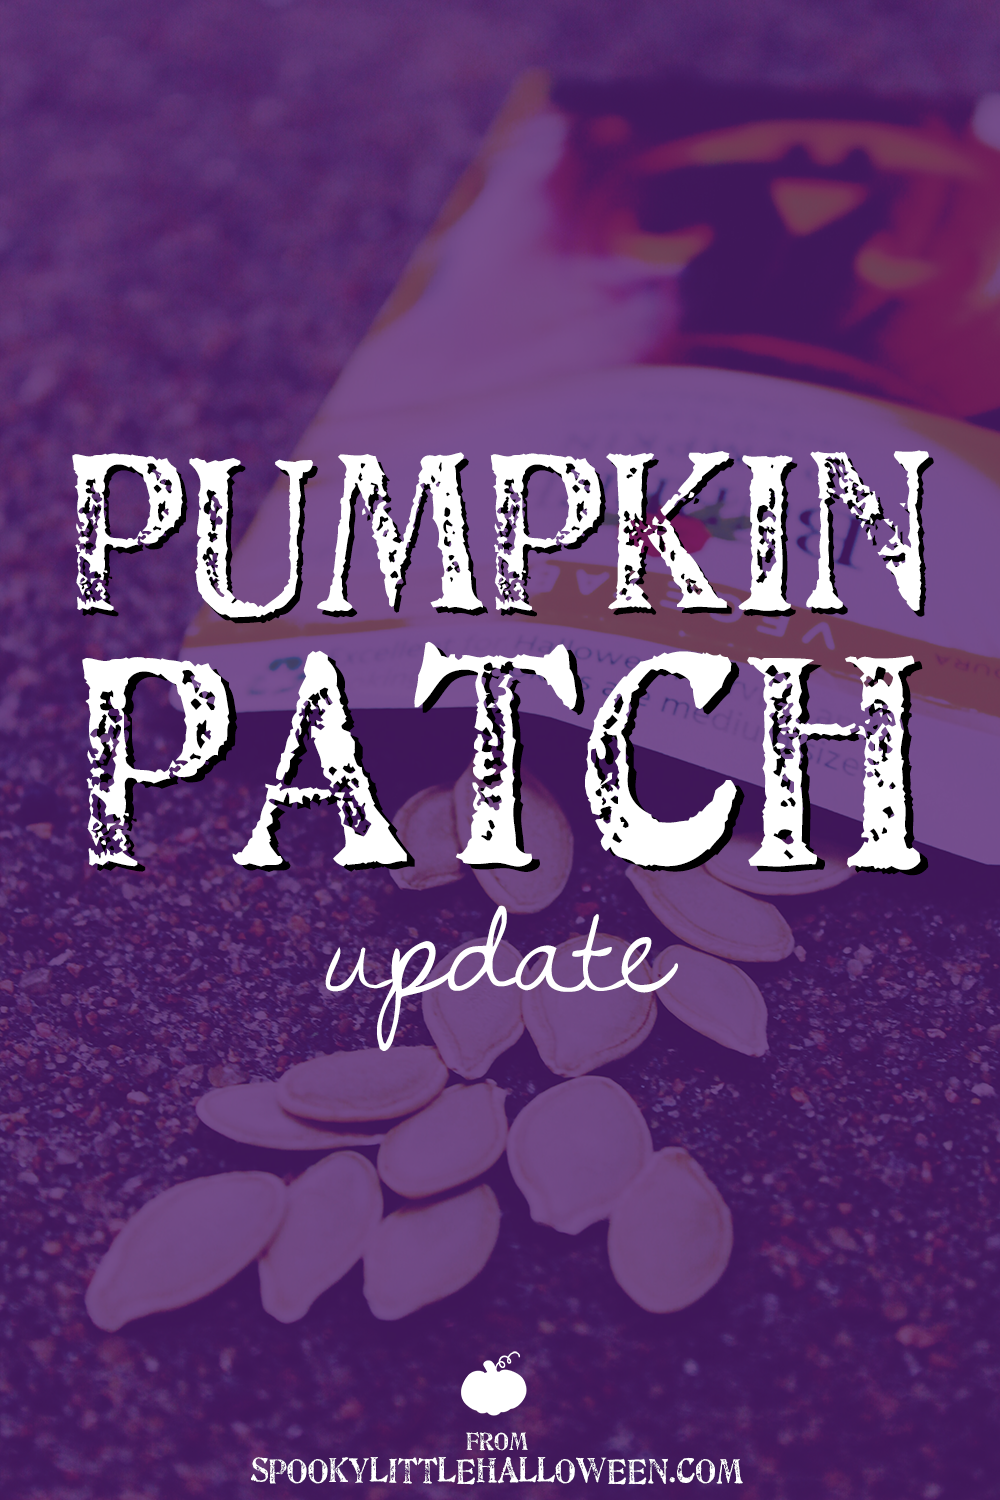 I'm growing my own backyard pumpkin patch for Halloween! Here's a peek at the first six weeks of progress in my little patch.